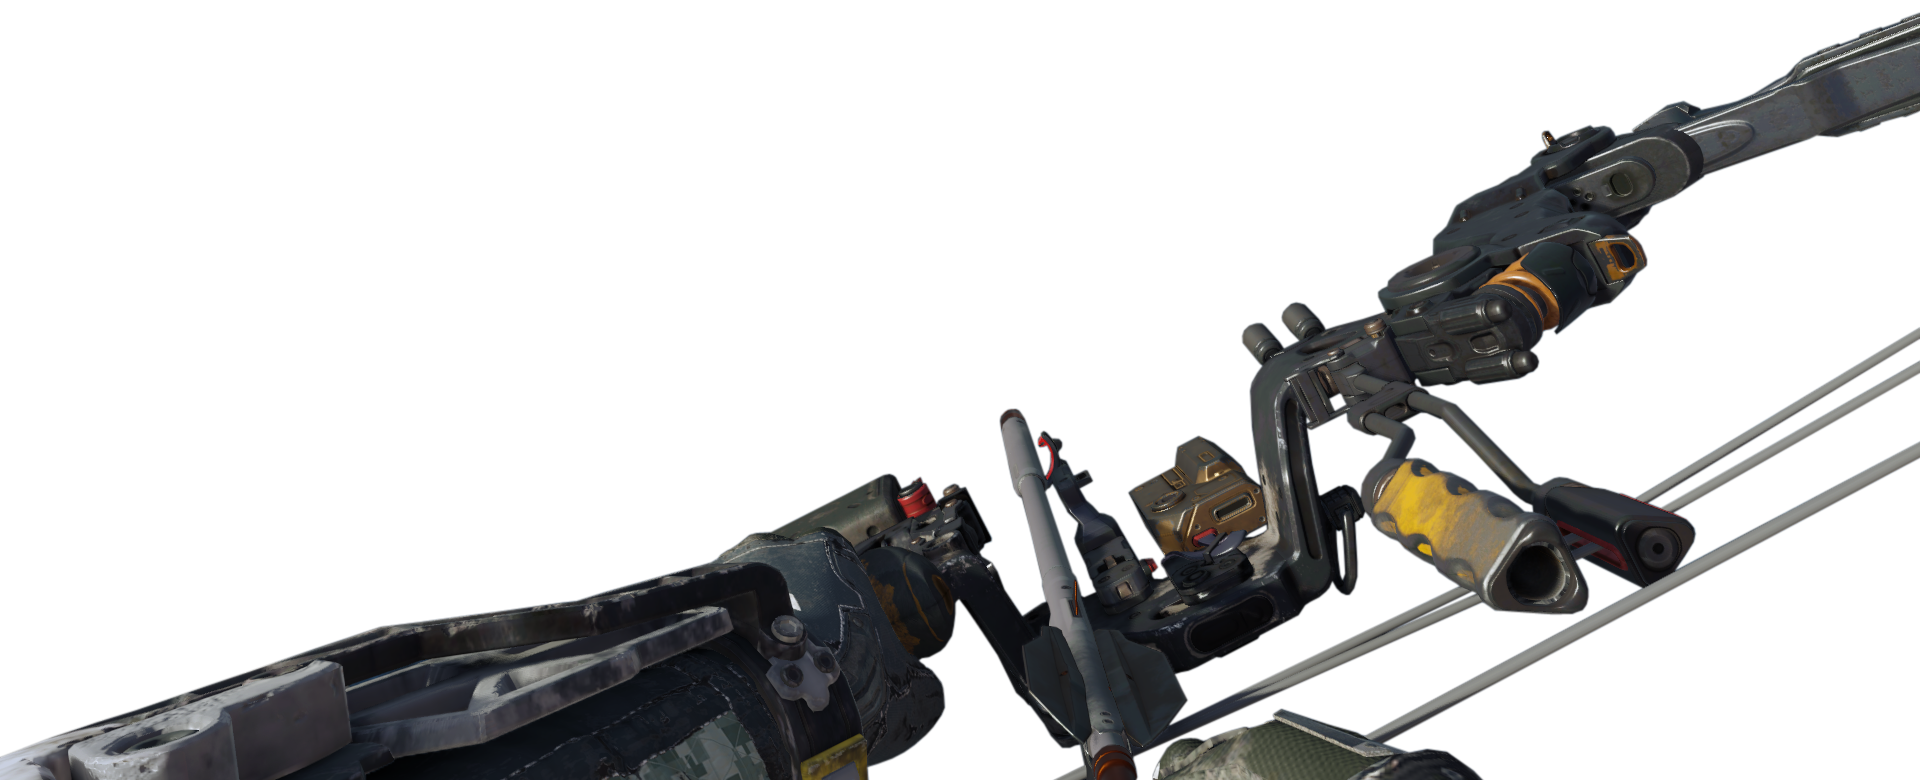 jpg transparent download Image sparrow bo png. Bo3 transparent outrider